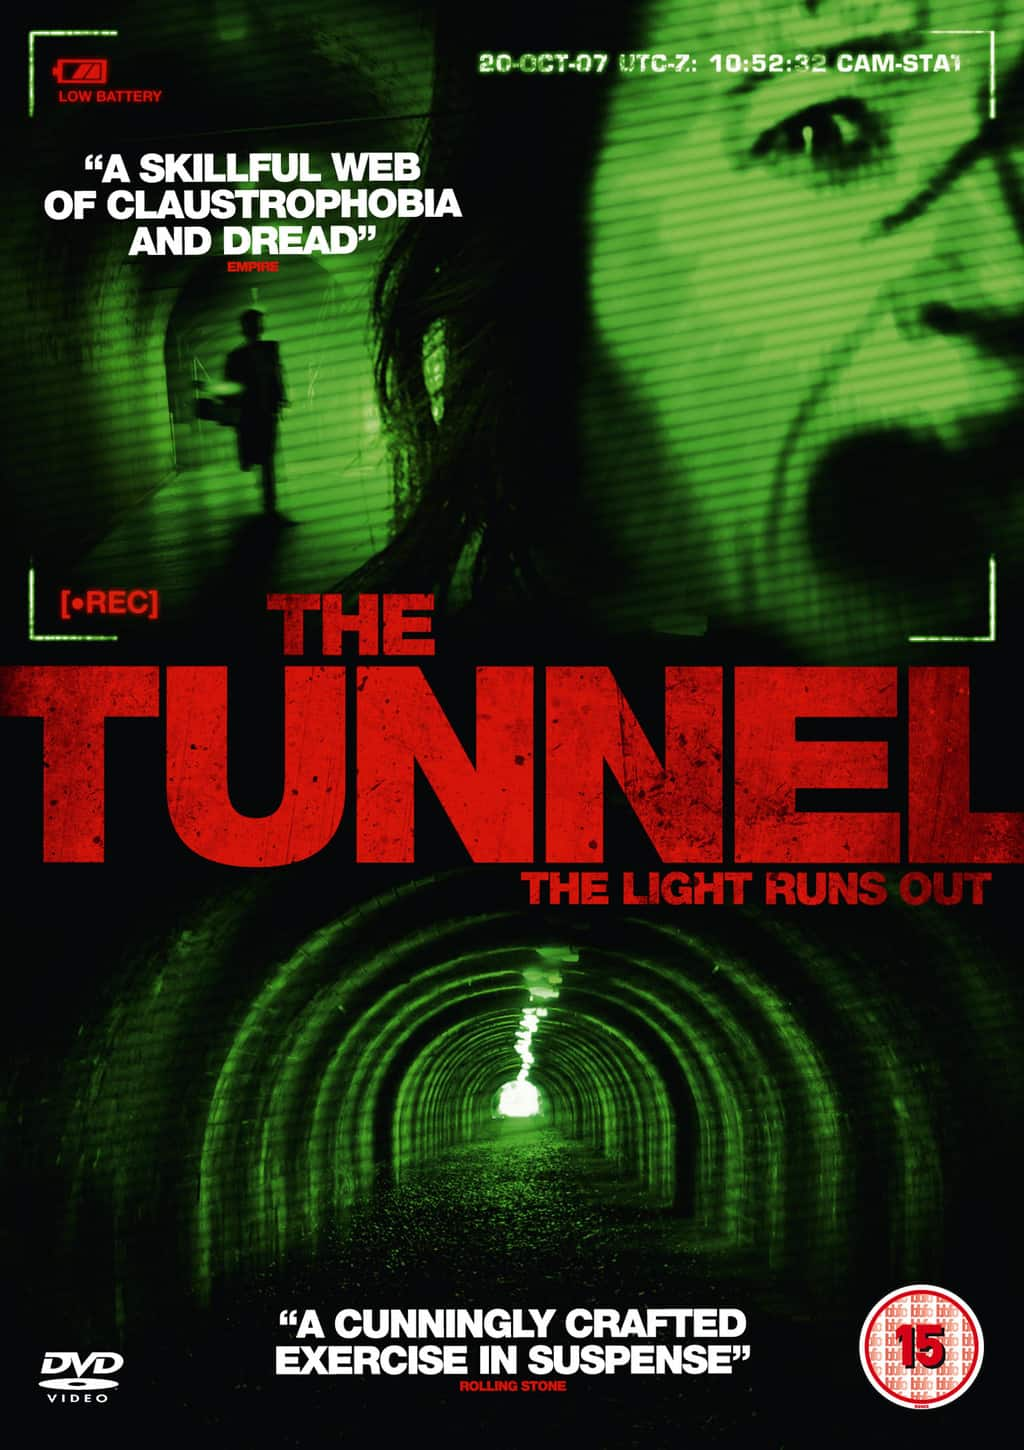 film reviews | movies | features | BRWC The Tunnel - Review